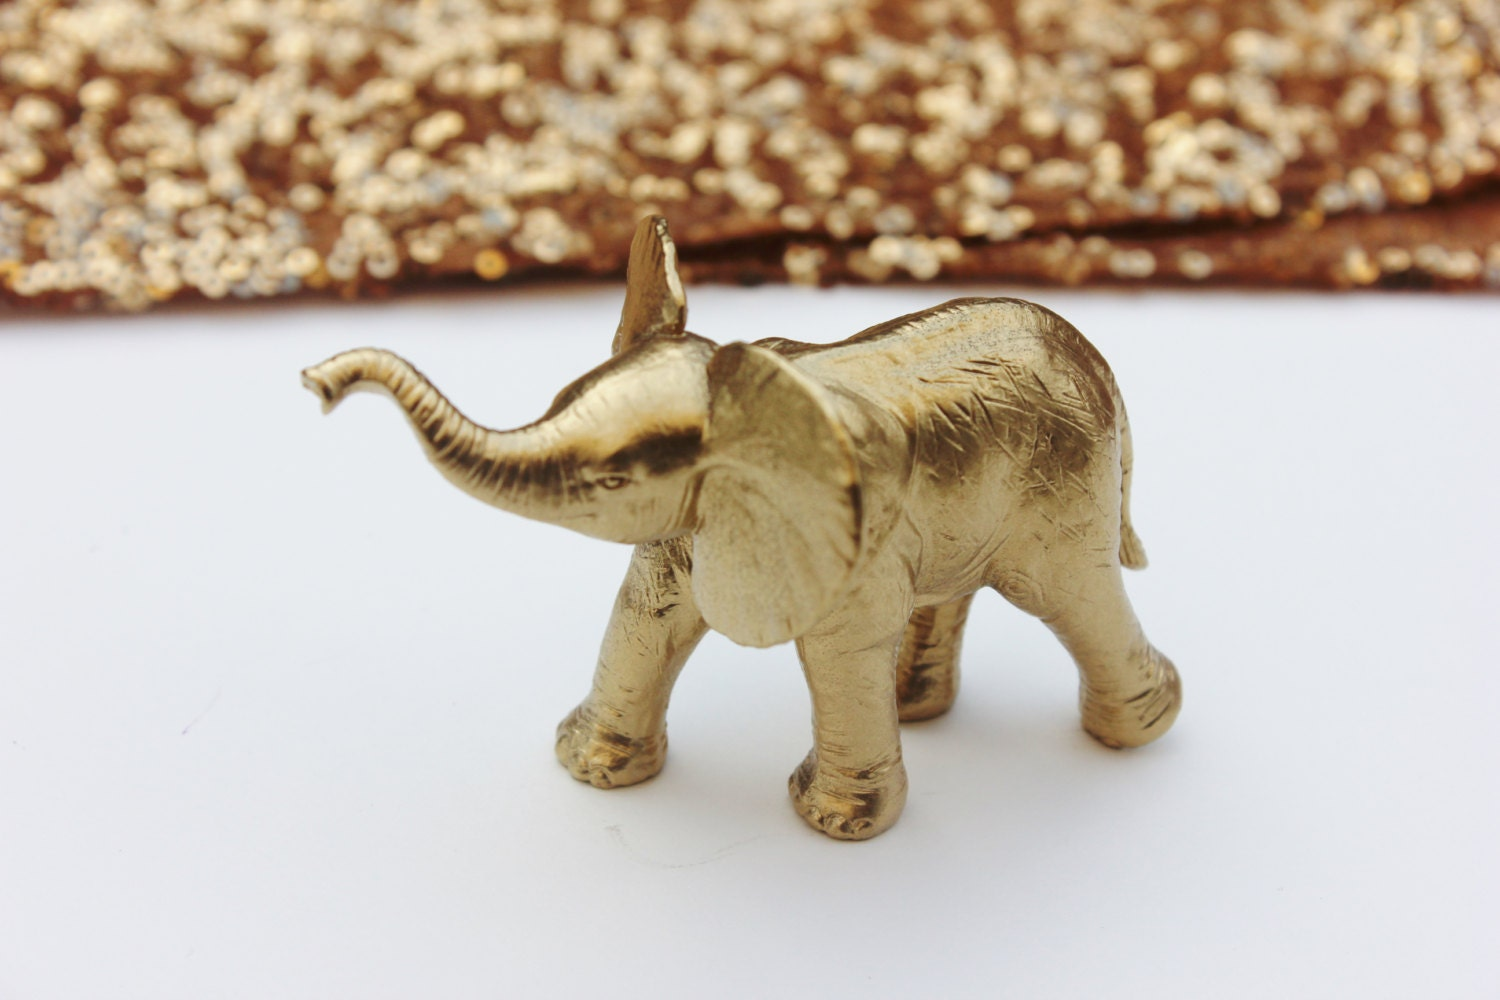 Indian Elephant Figurine Small Cake Topper Buy